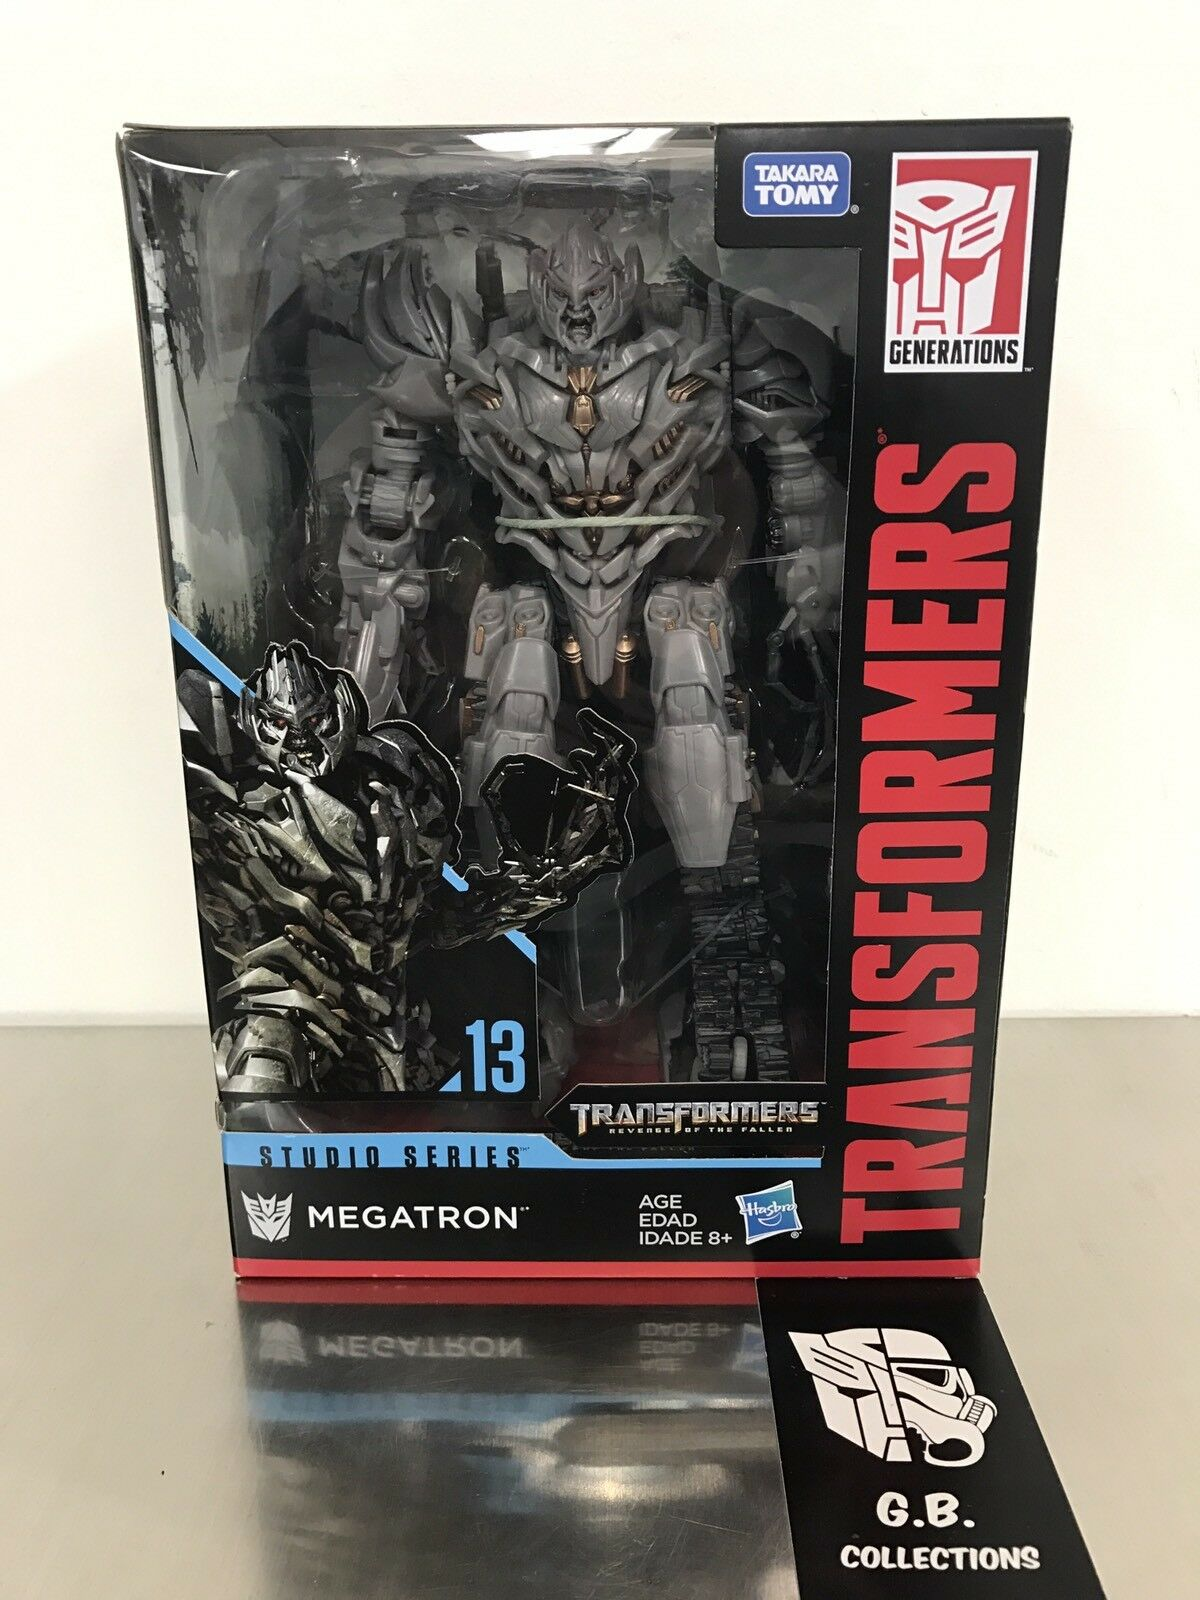 Transformers Studio Series Megatron Voyager Class NEW SEALED